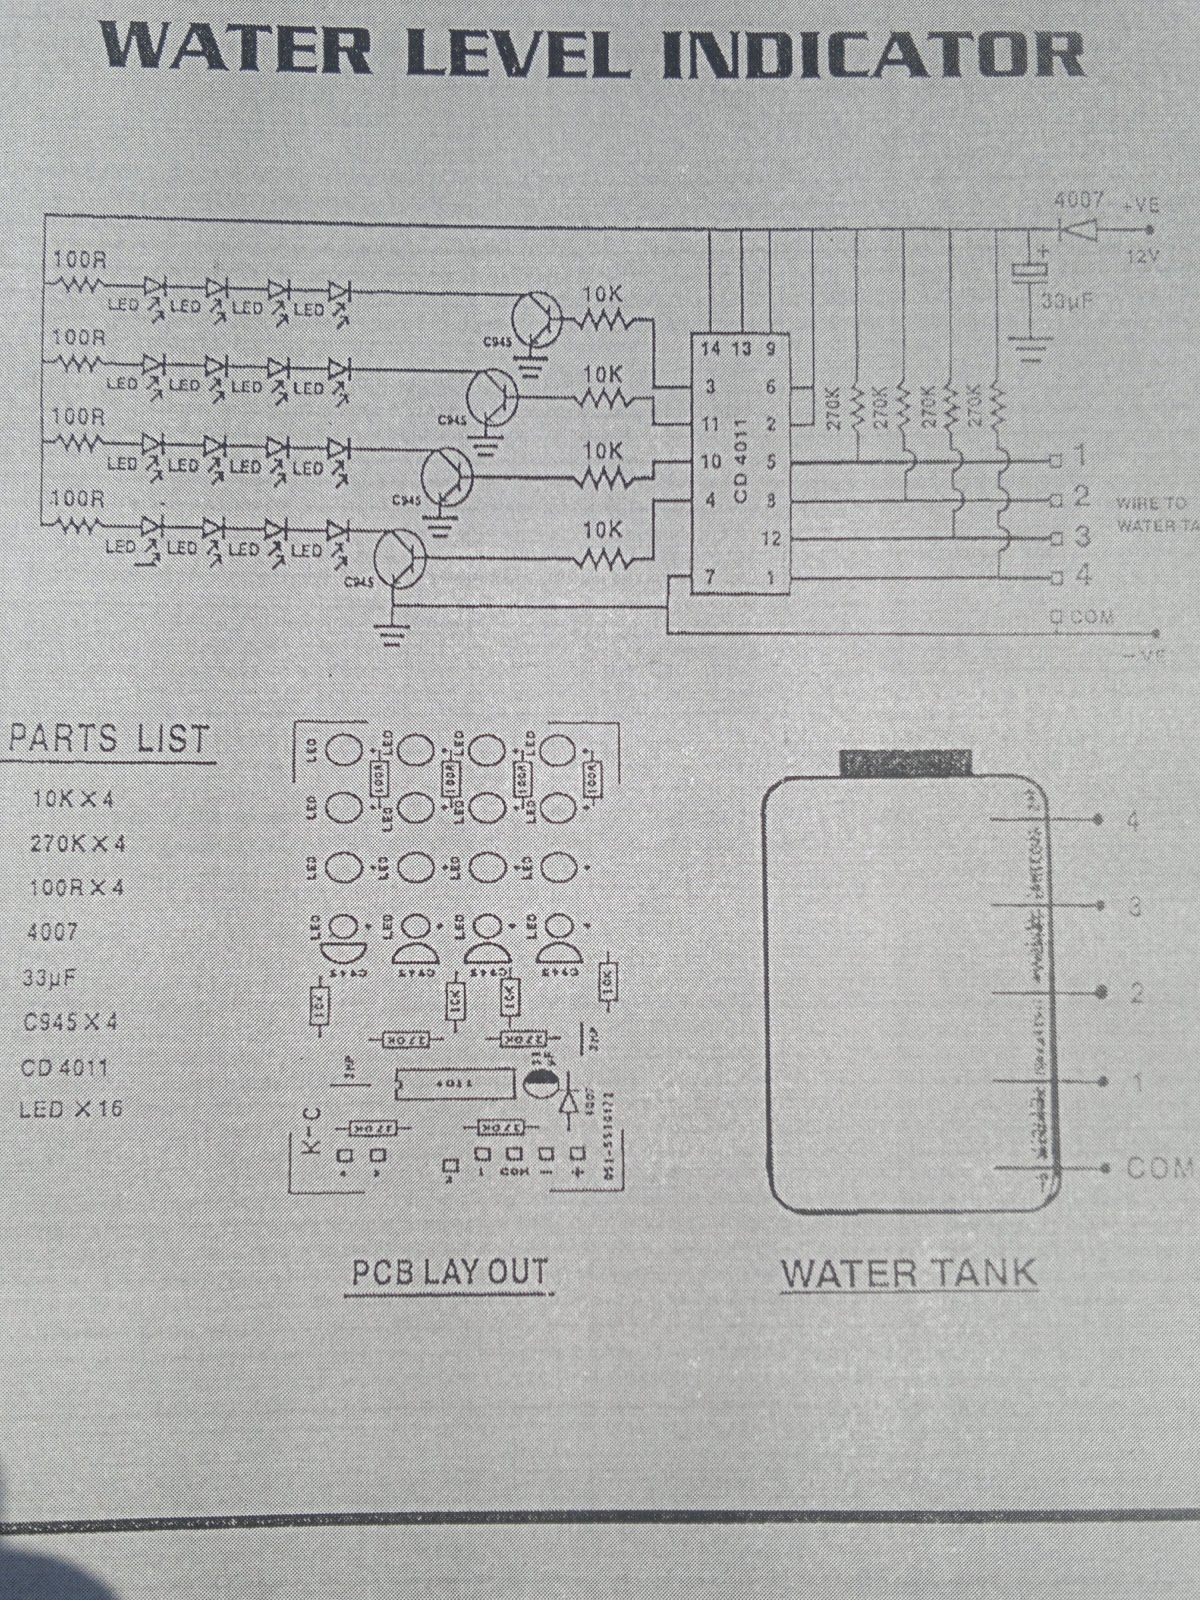 Mobile Zone Water Level Indicator Engineering Project